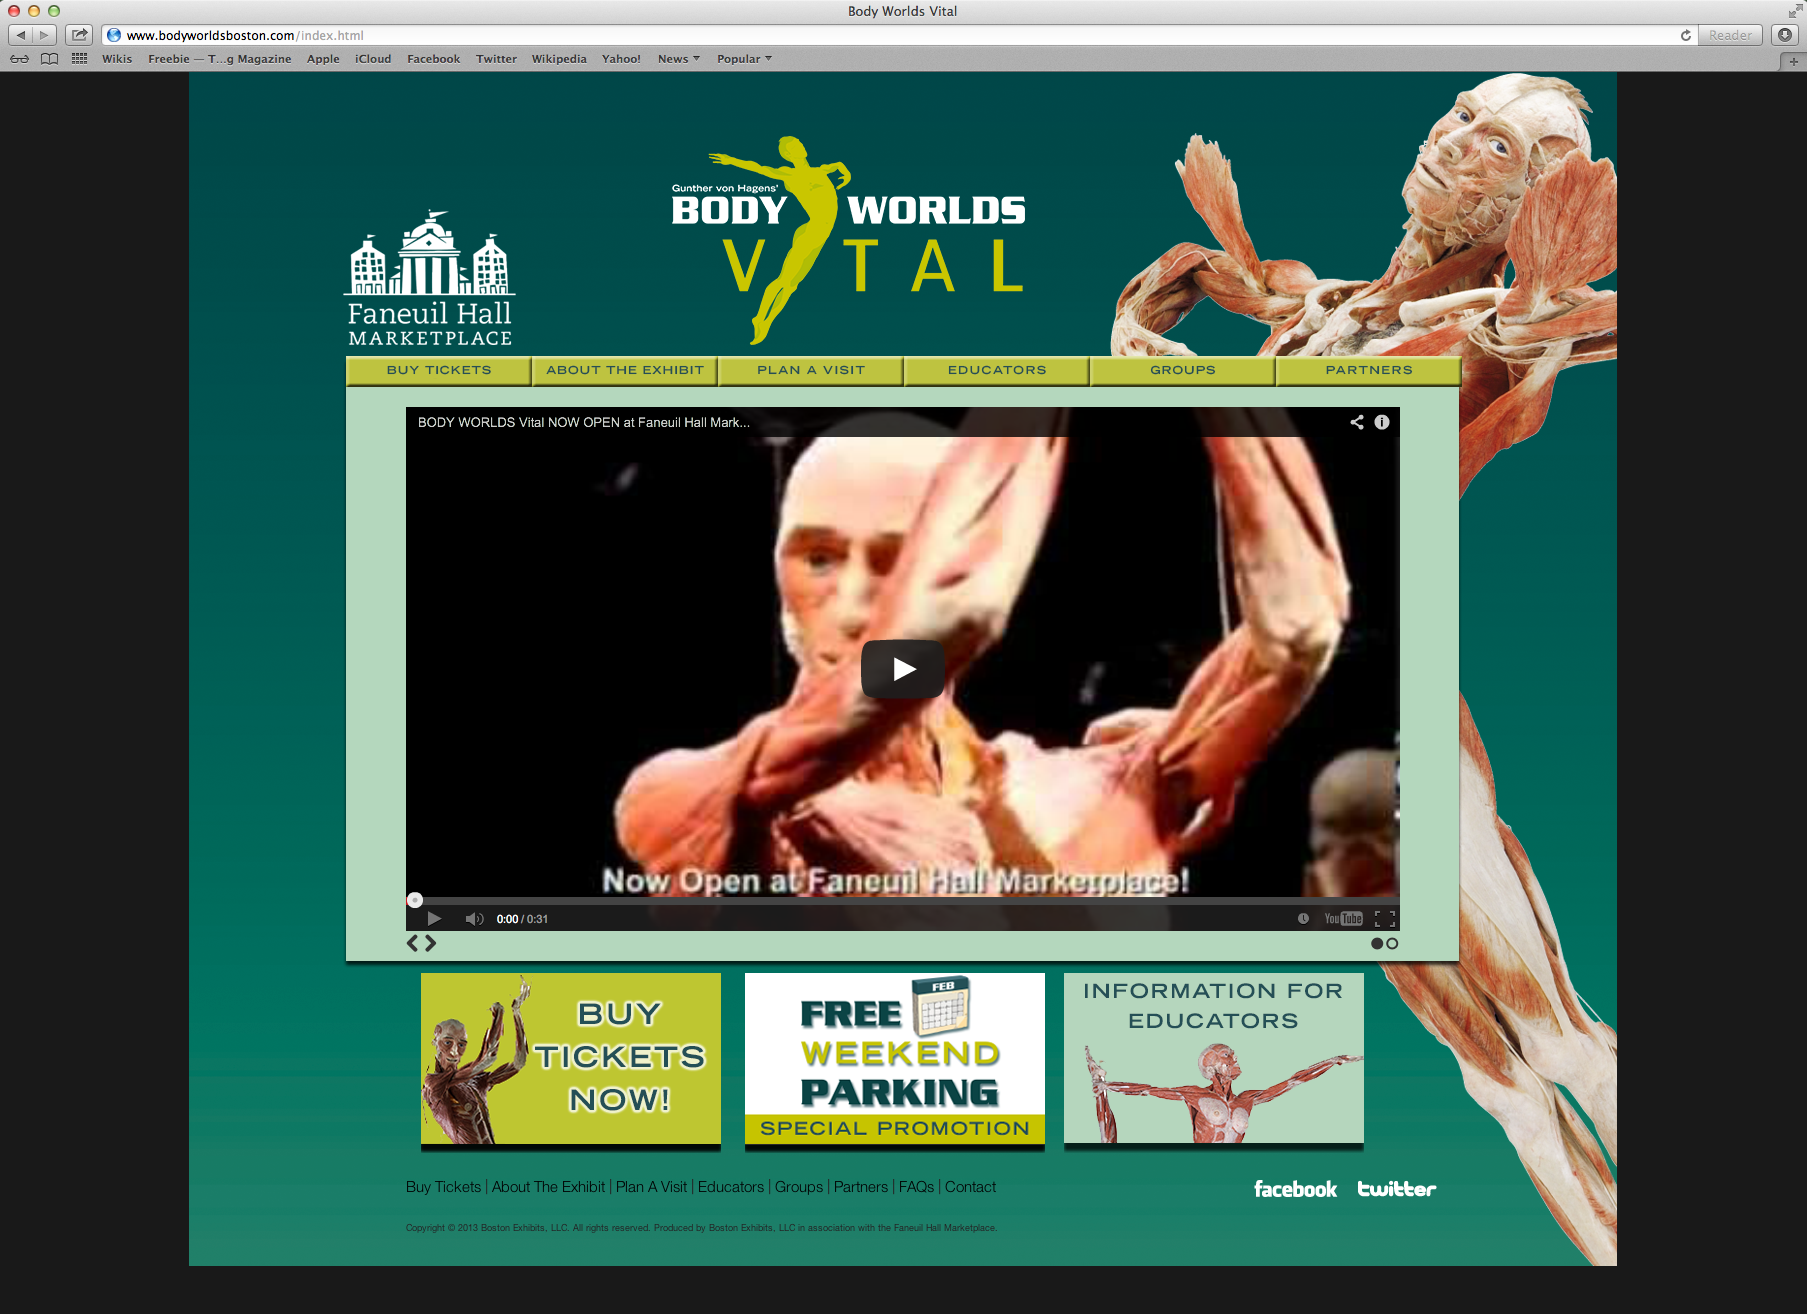 Body Worlds Vital Website